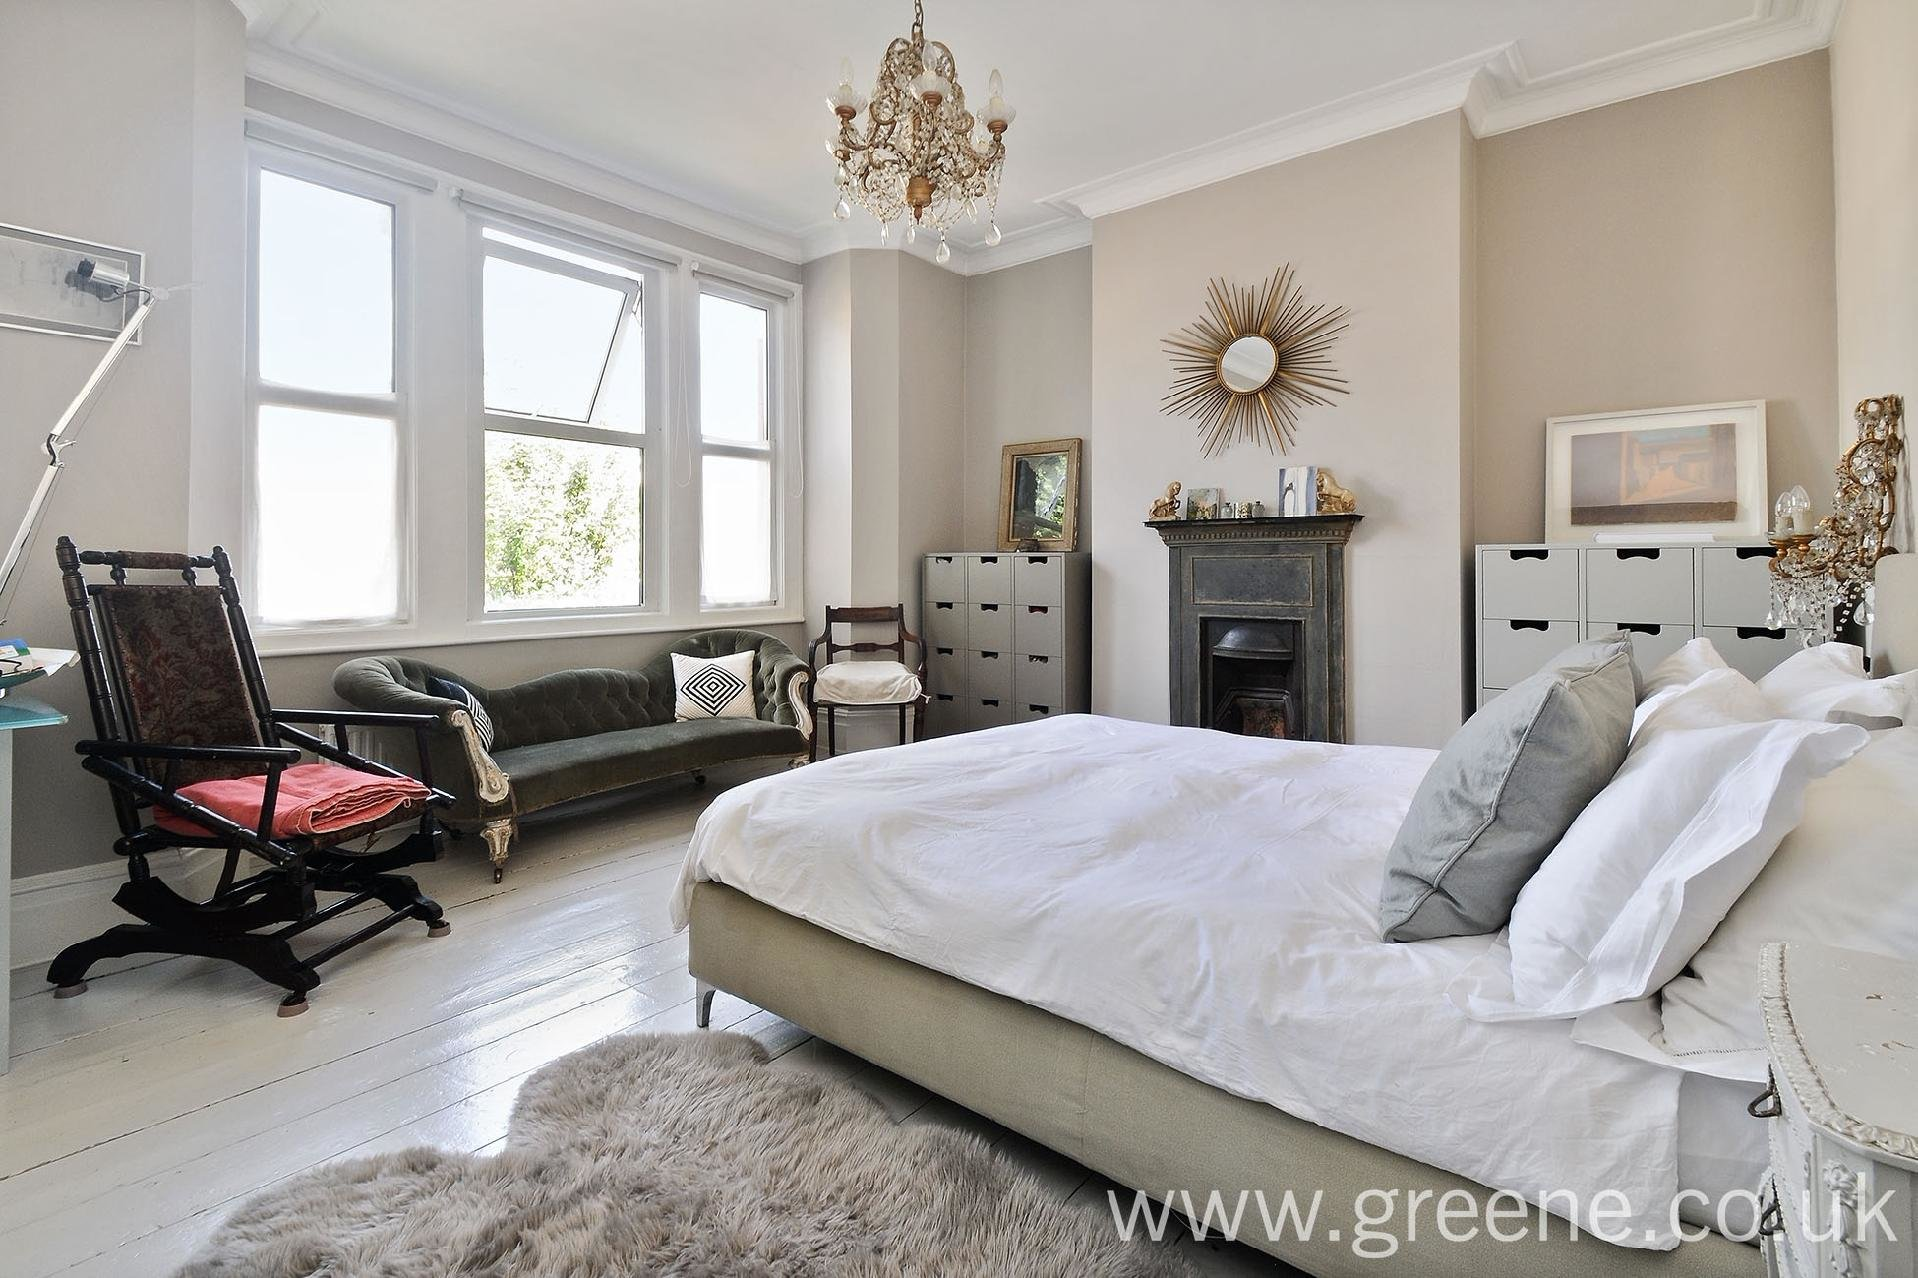 Best 3 Bedroom House To Rent In Spezia Road Kensal Rise London Nw10 Whp140773 Greene Co With Pictures